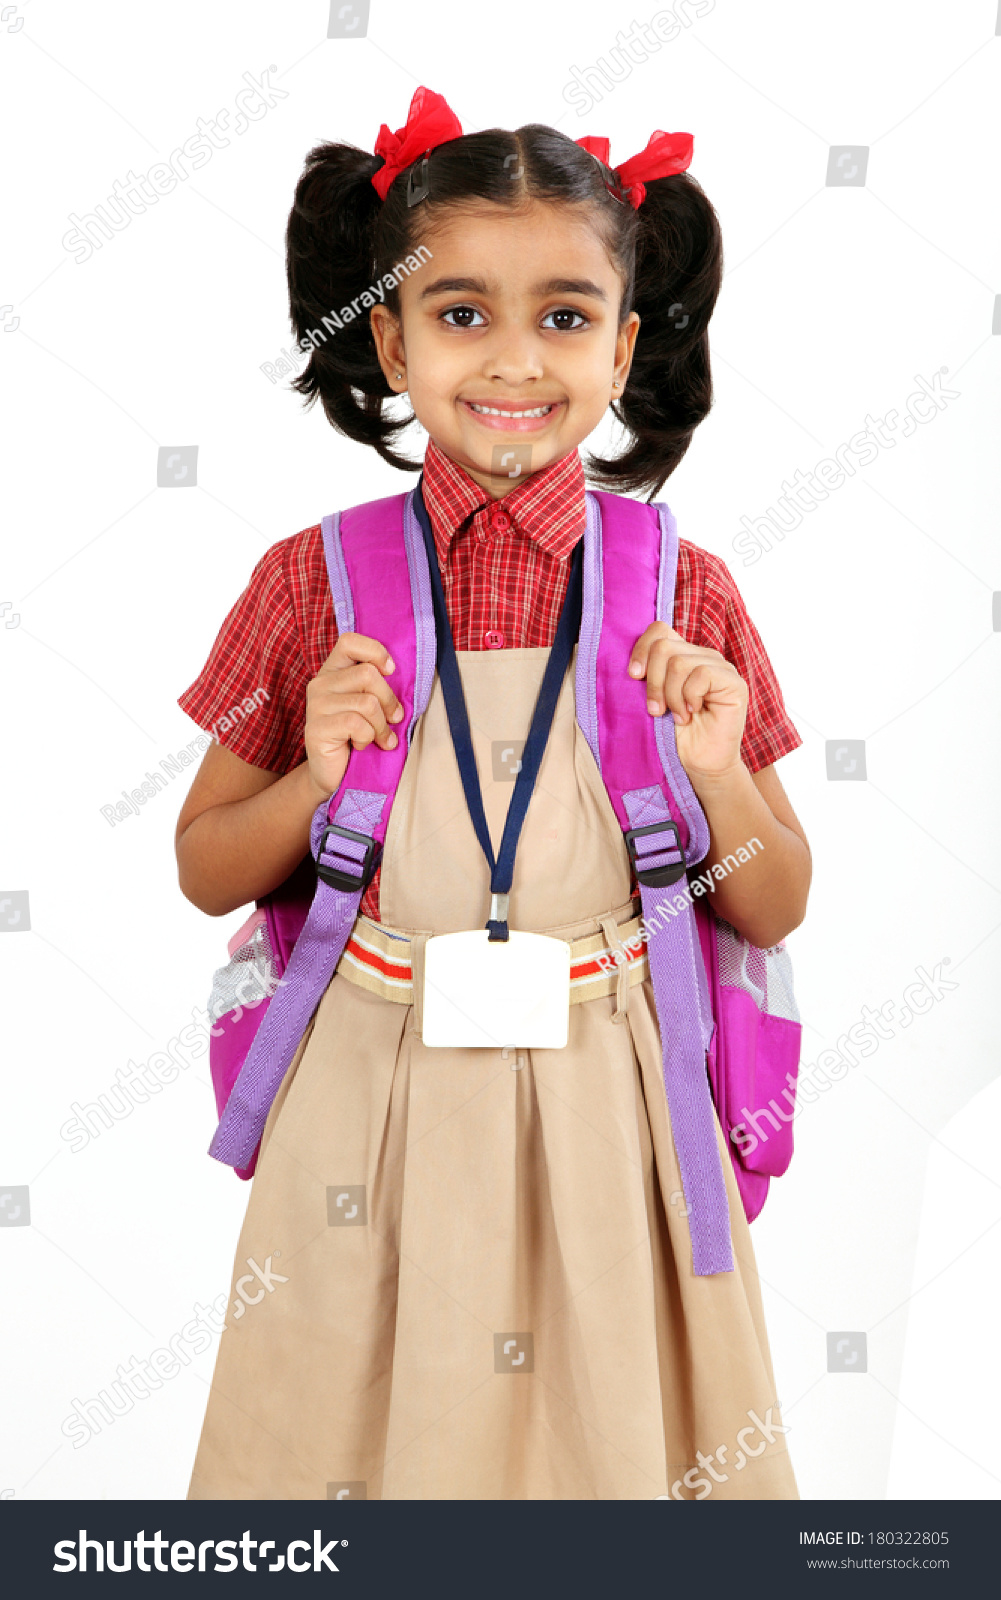 Indian school children with bags clipart 7 » Clipart Station.